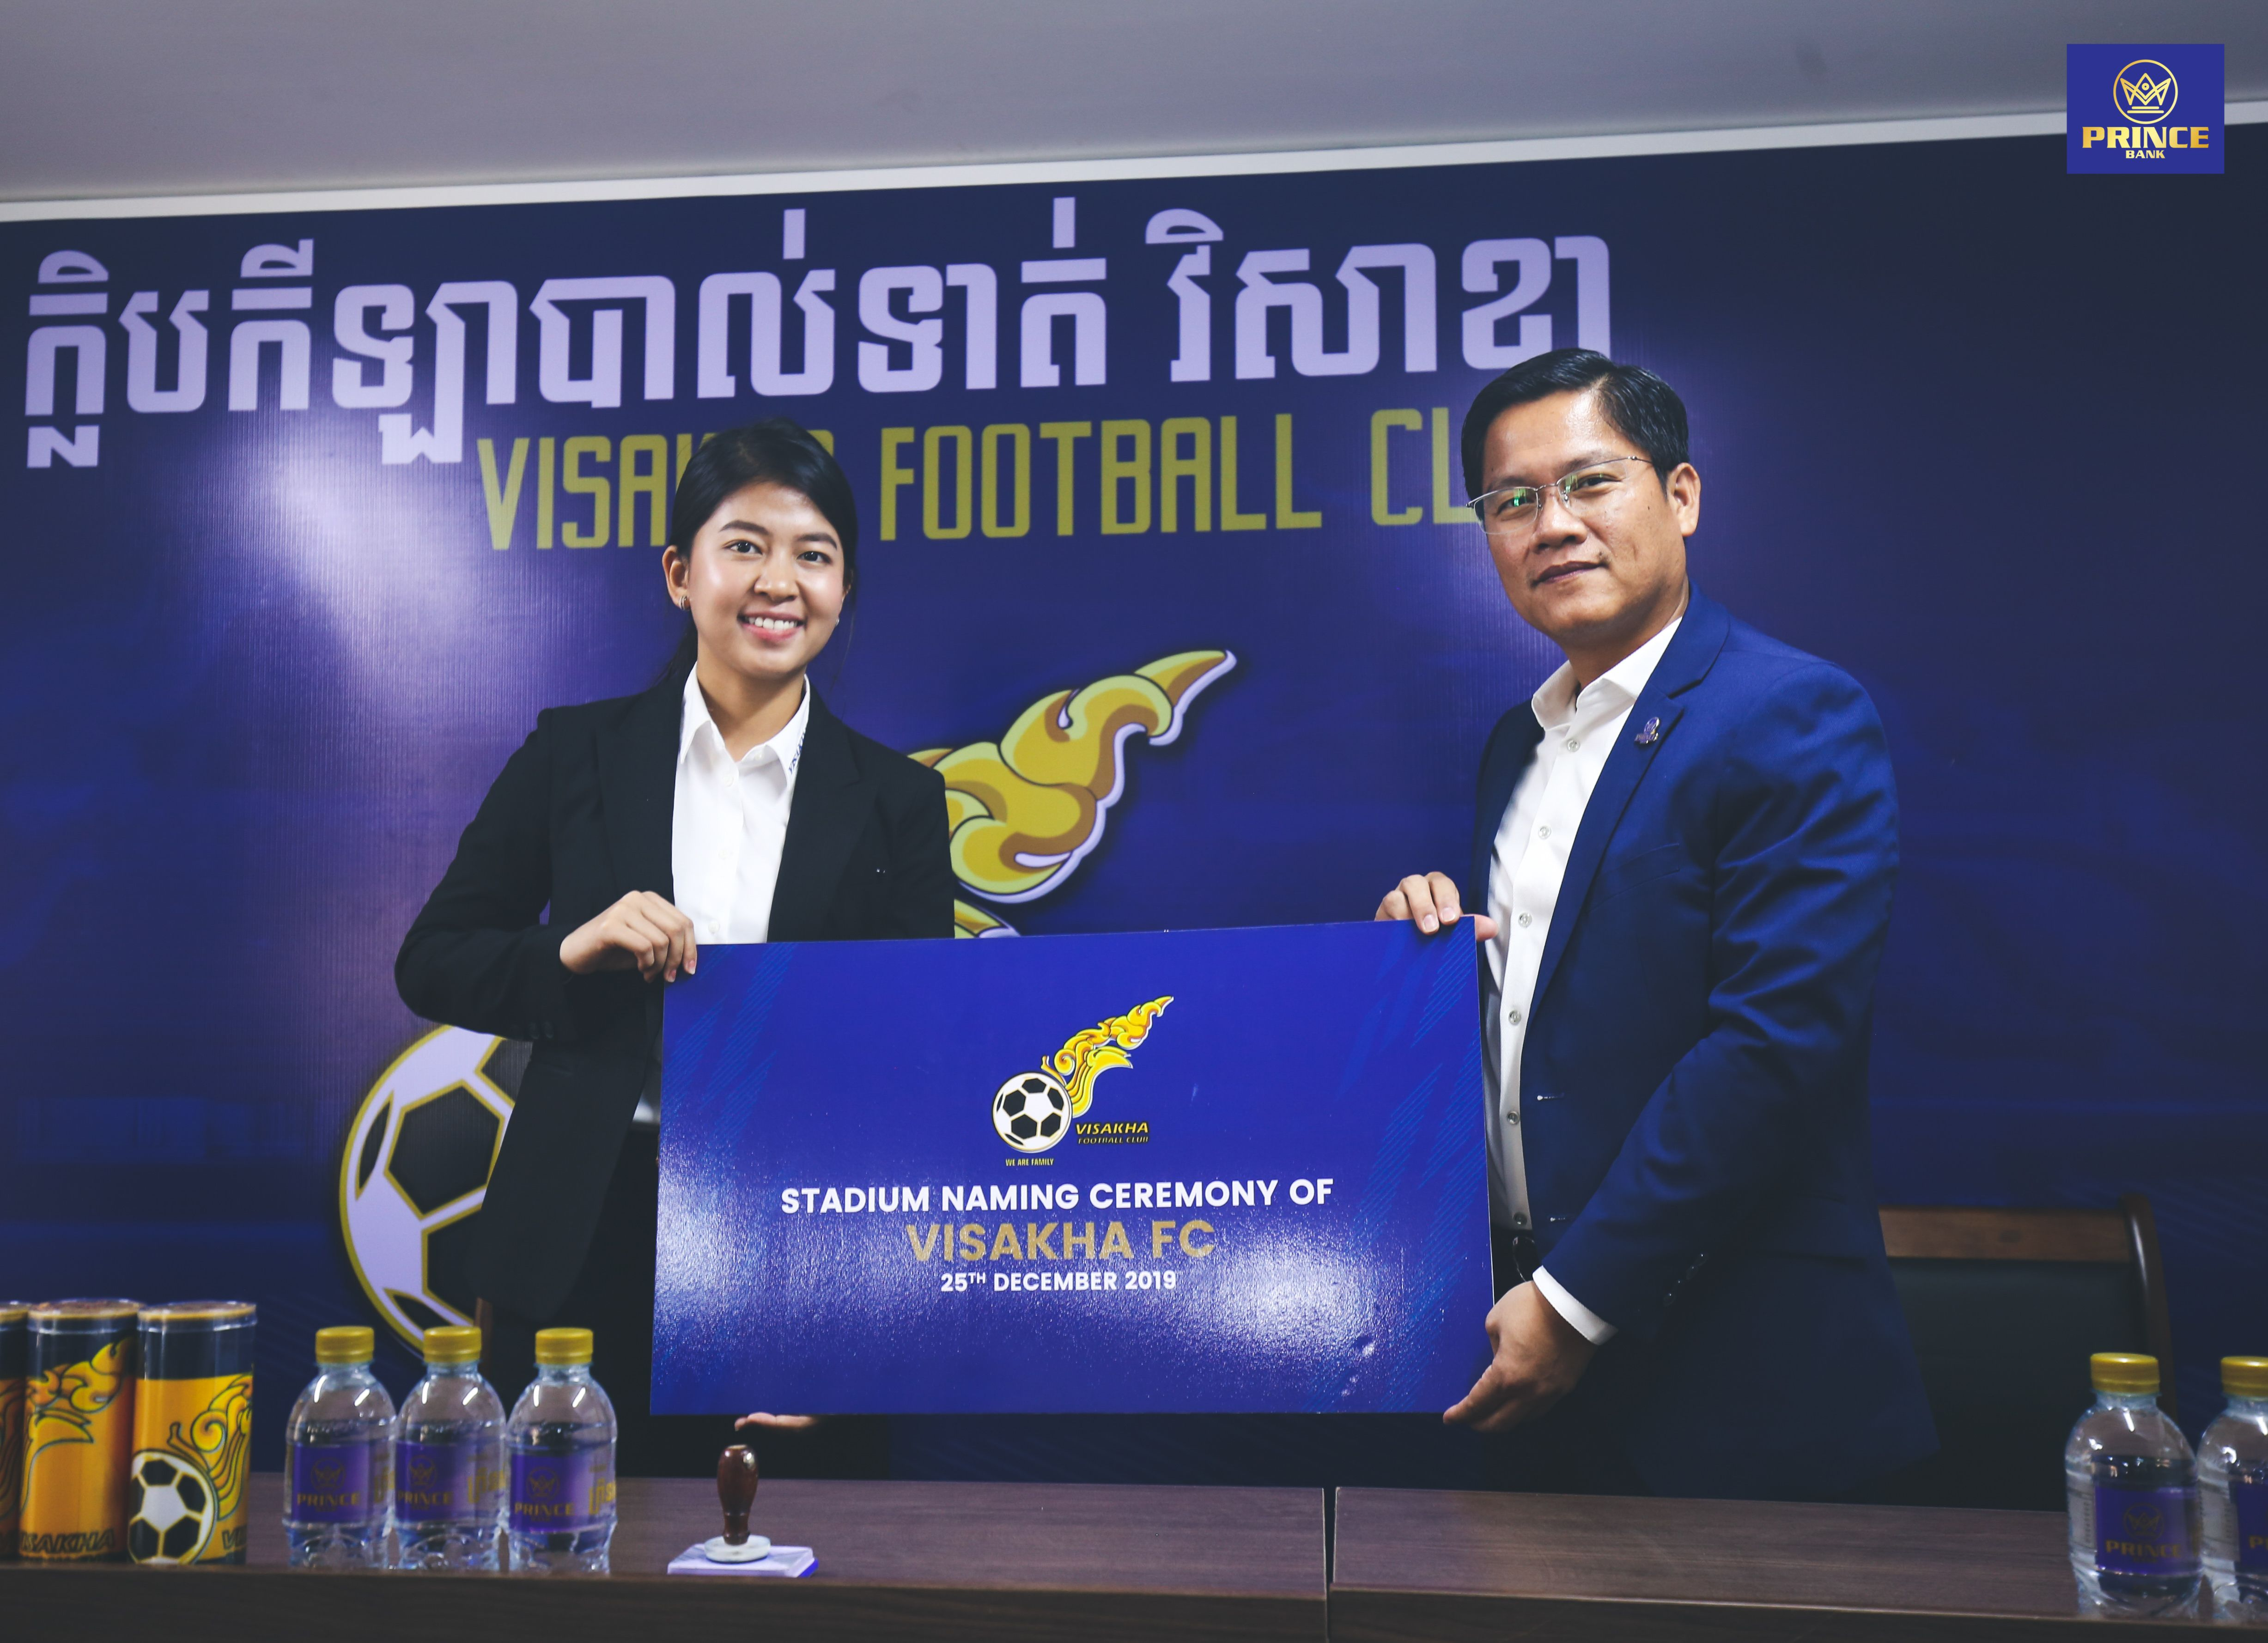 Prince Bank Plc. renewed its sponsorship of the Visakha Football Club for 2020 to 2022